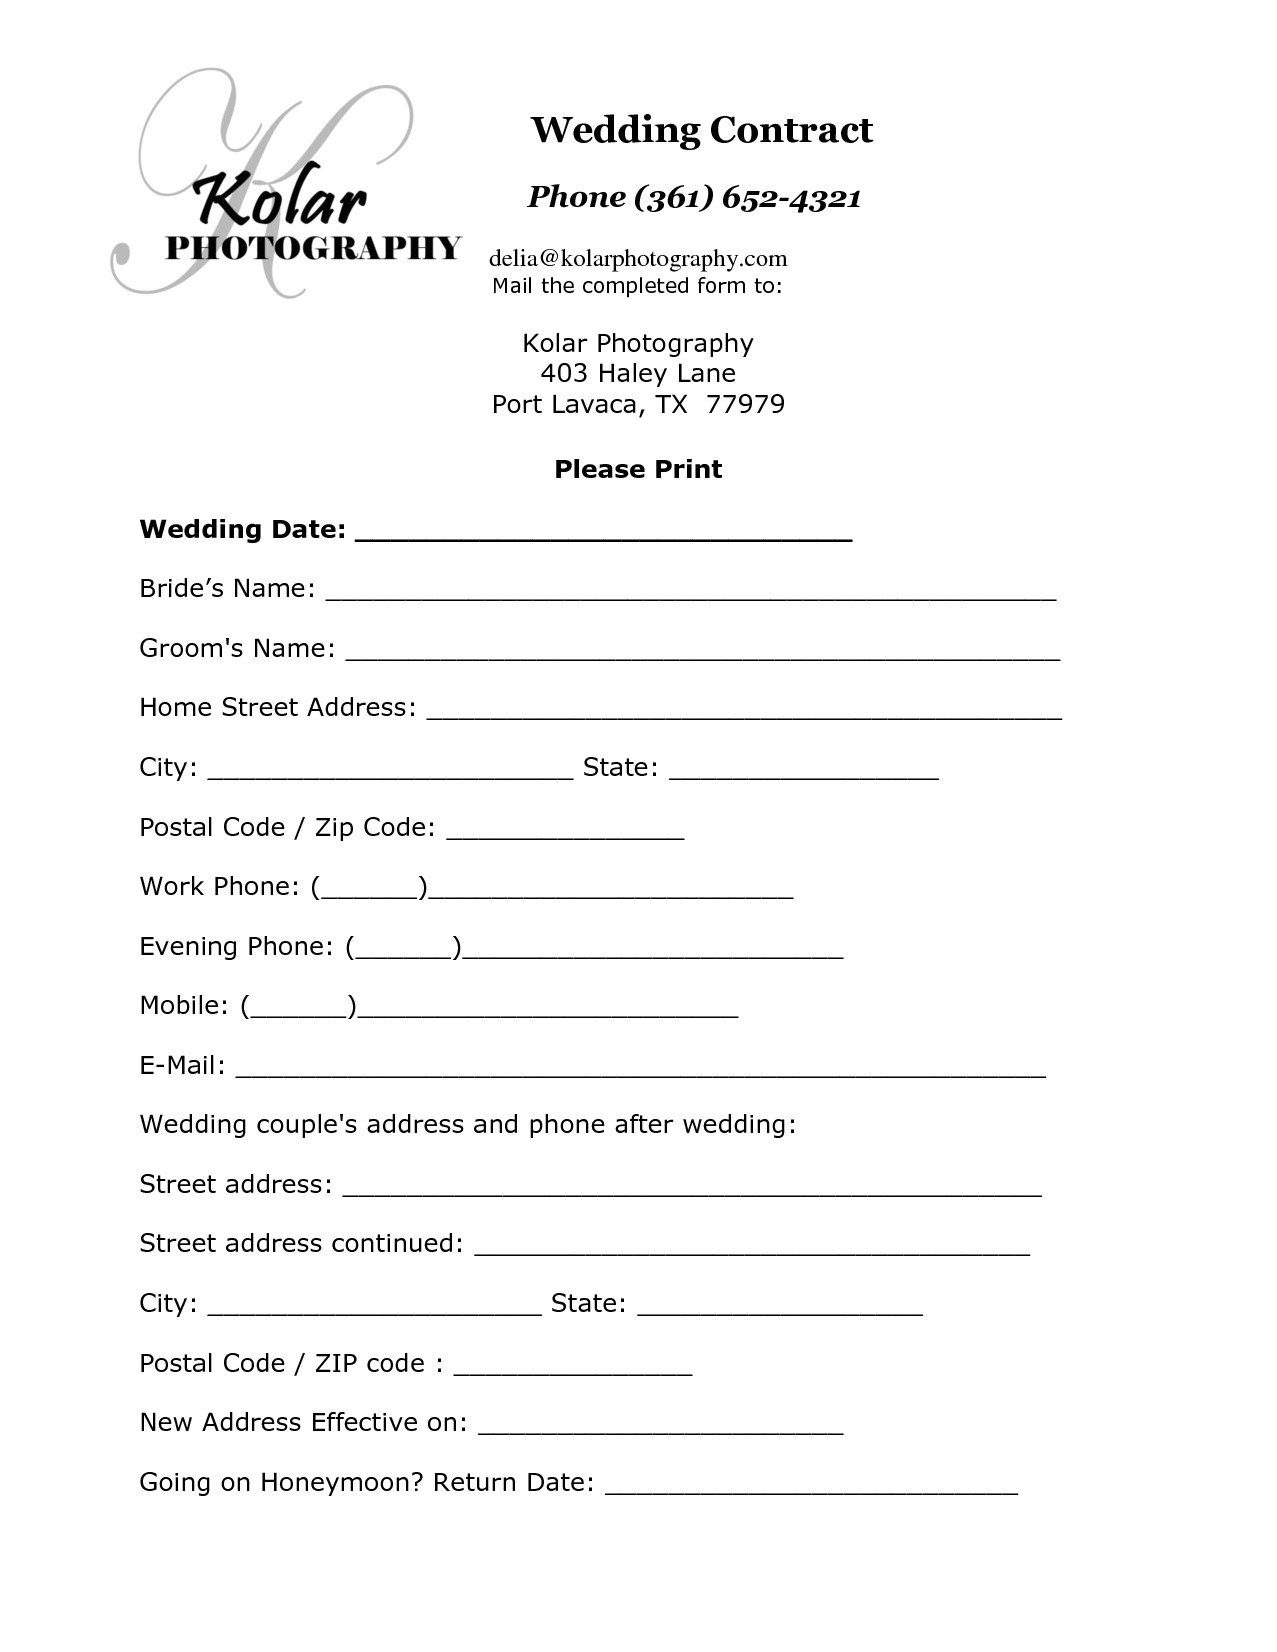 5 wedding photography contract template